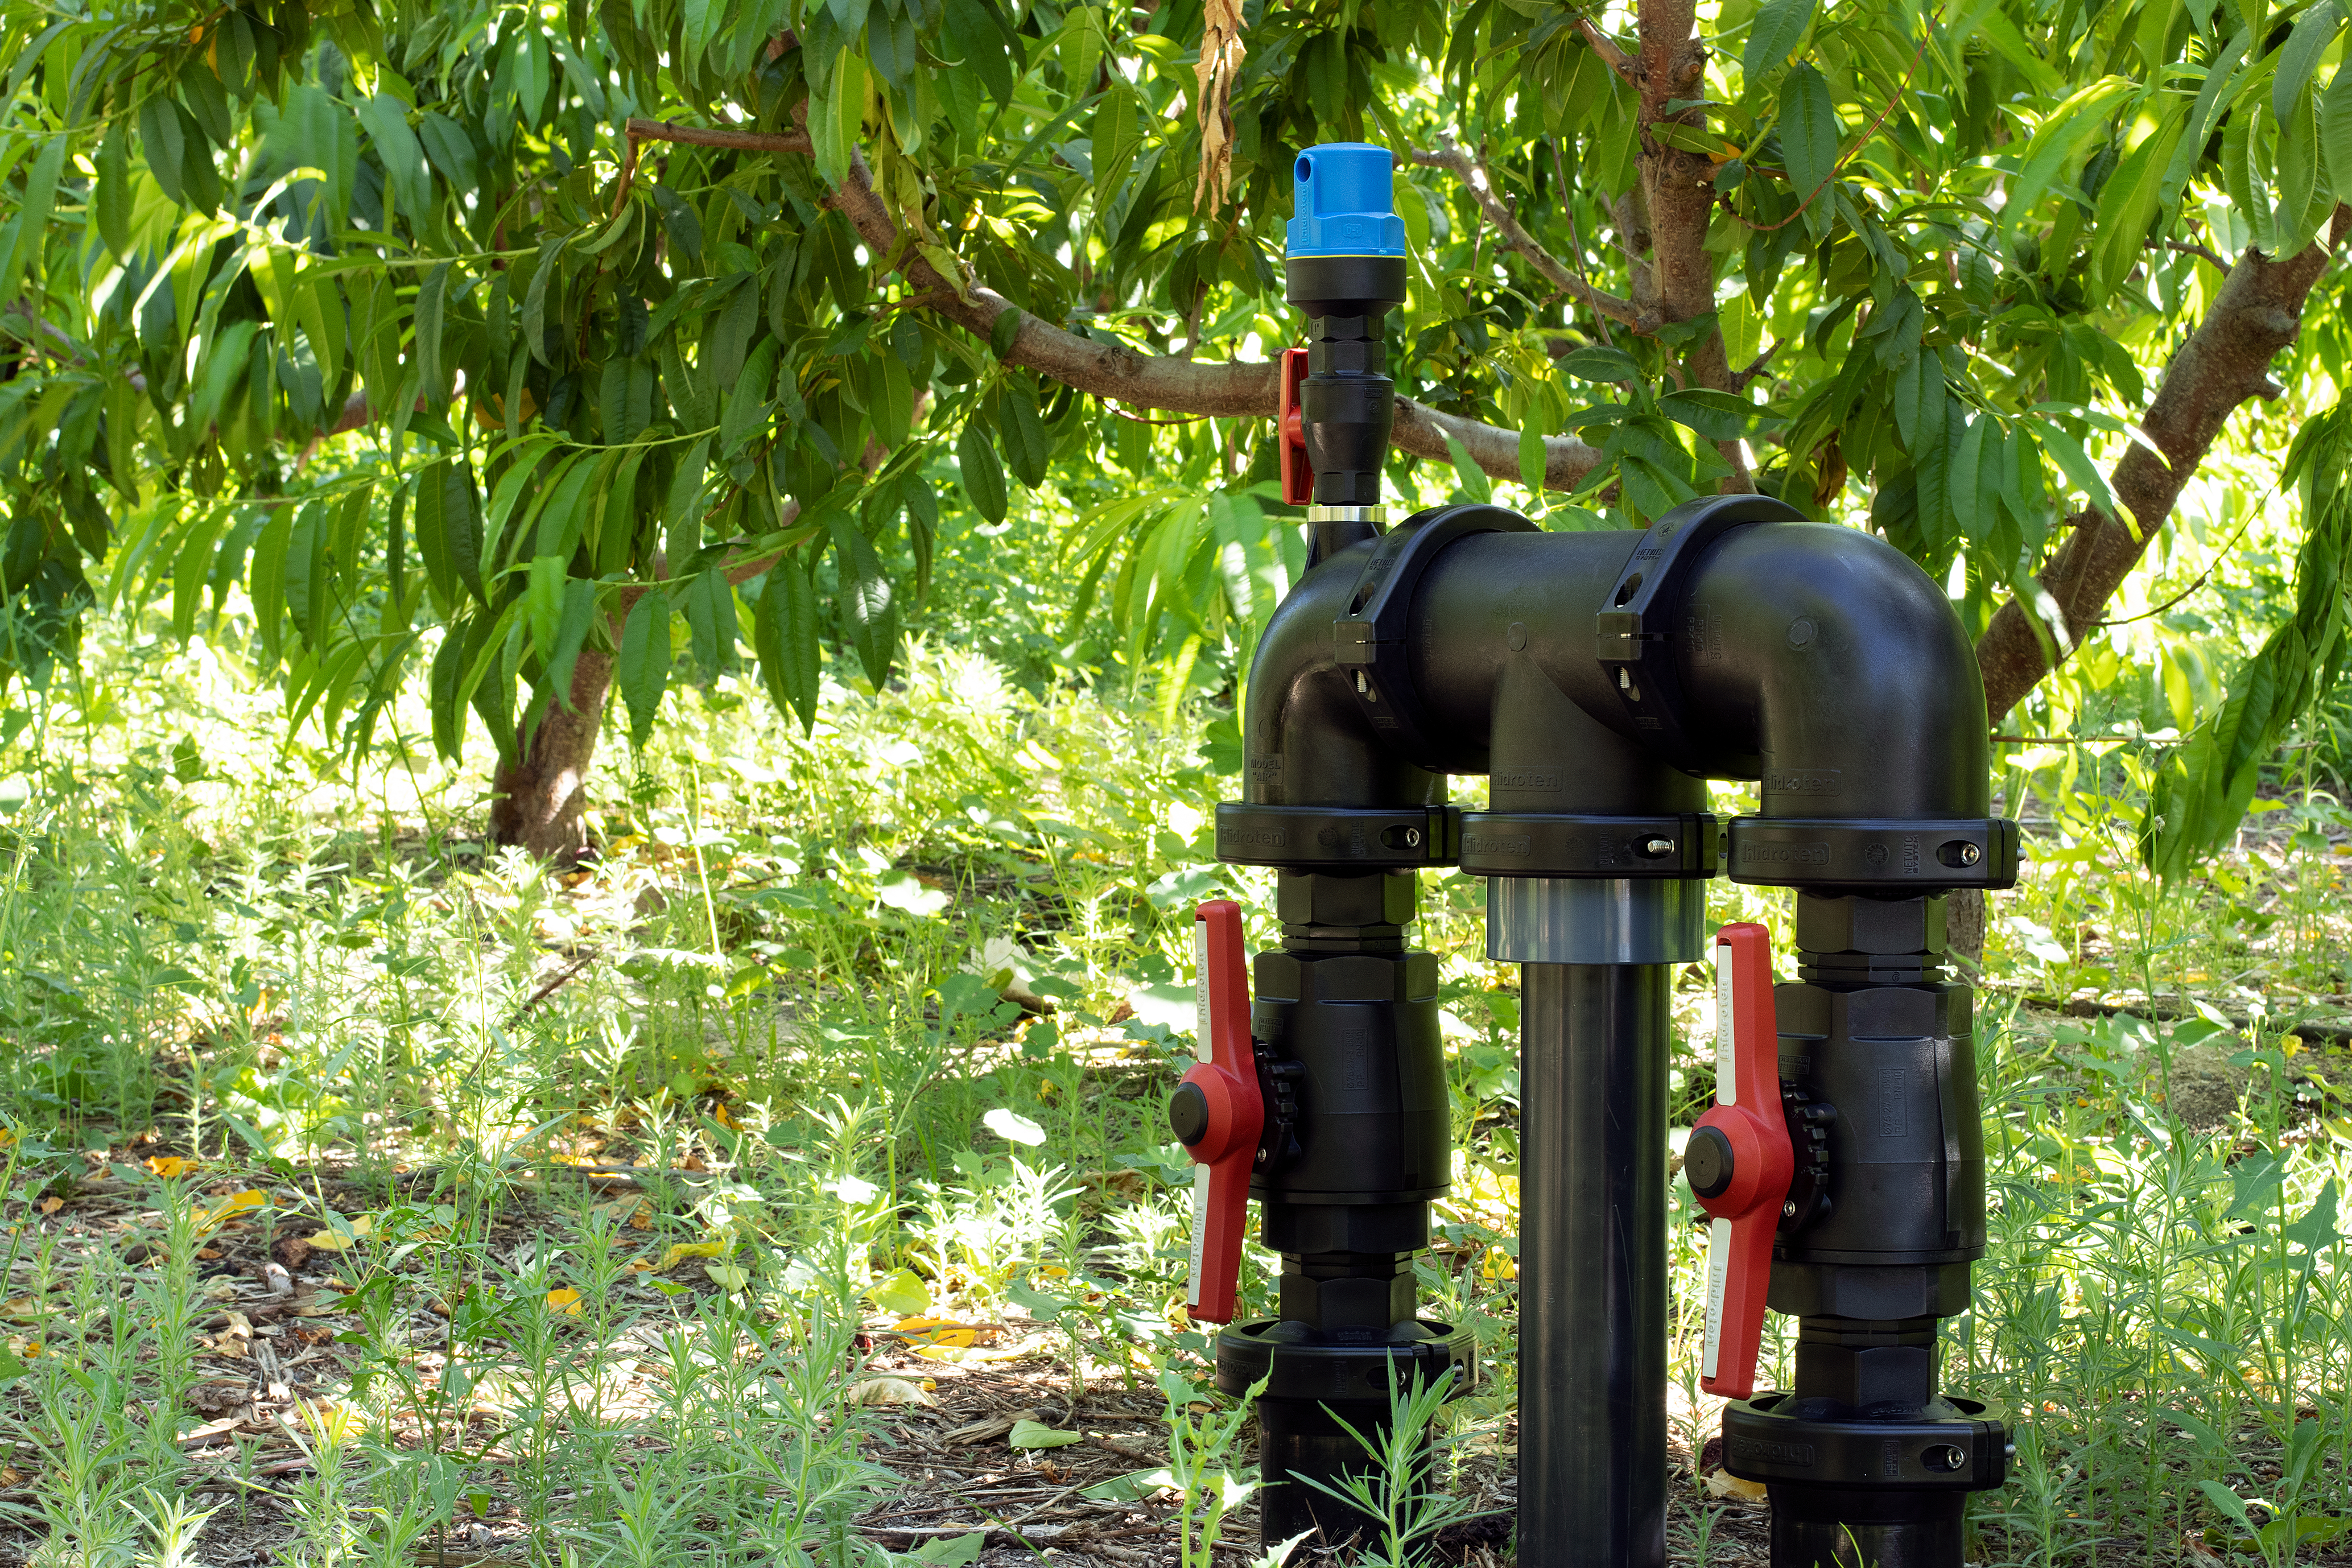 Irrigation bypass in a fruit tree farm - Alicante (Spain)